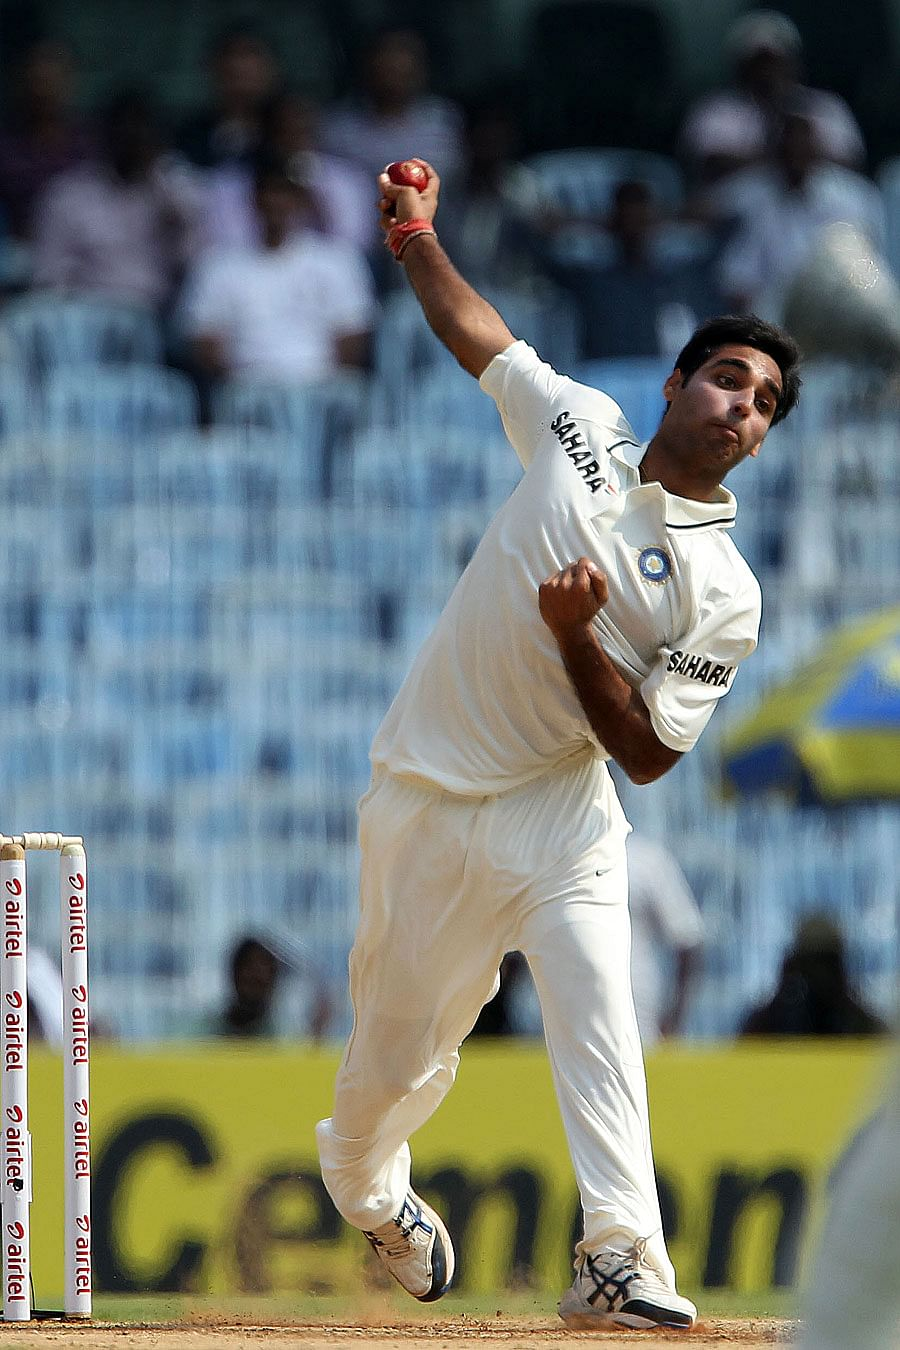 Bhuvneshwar Kumar - A bit of luck and there will be no looking back